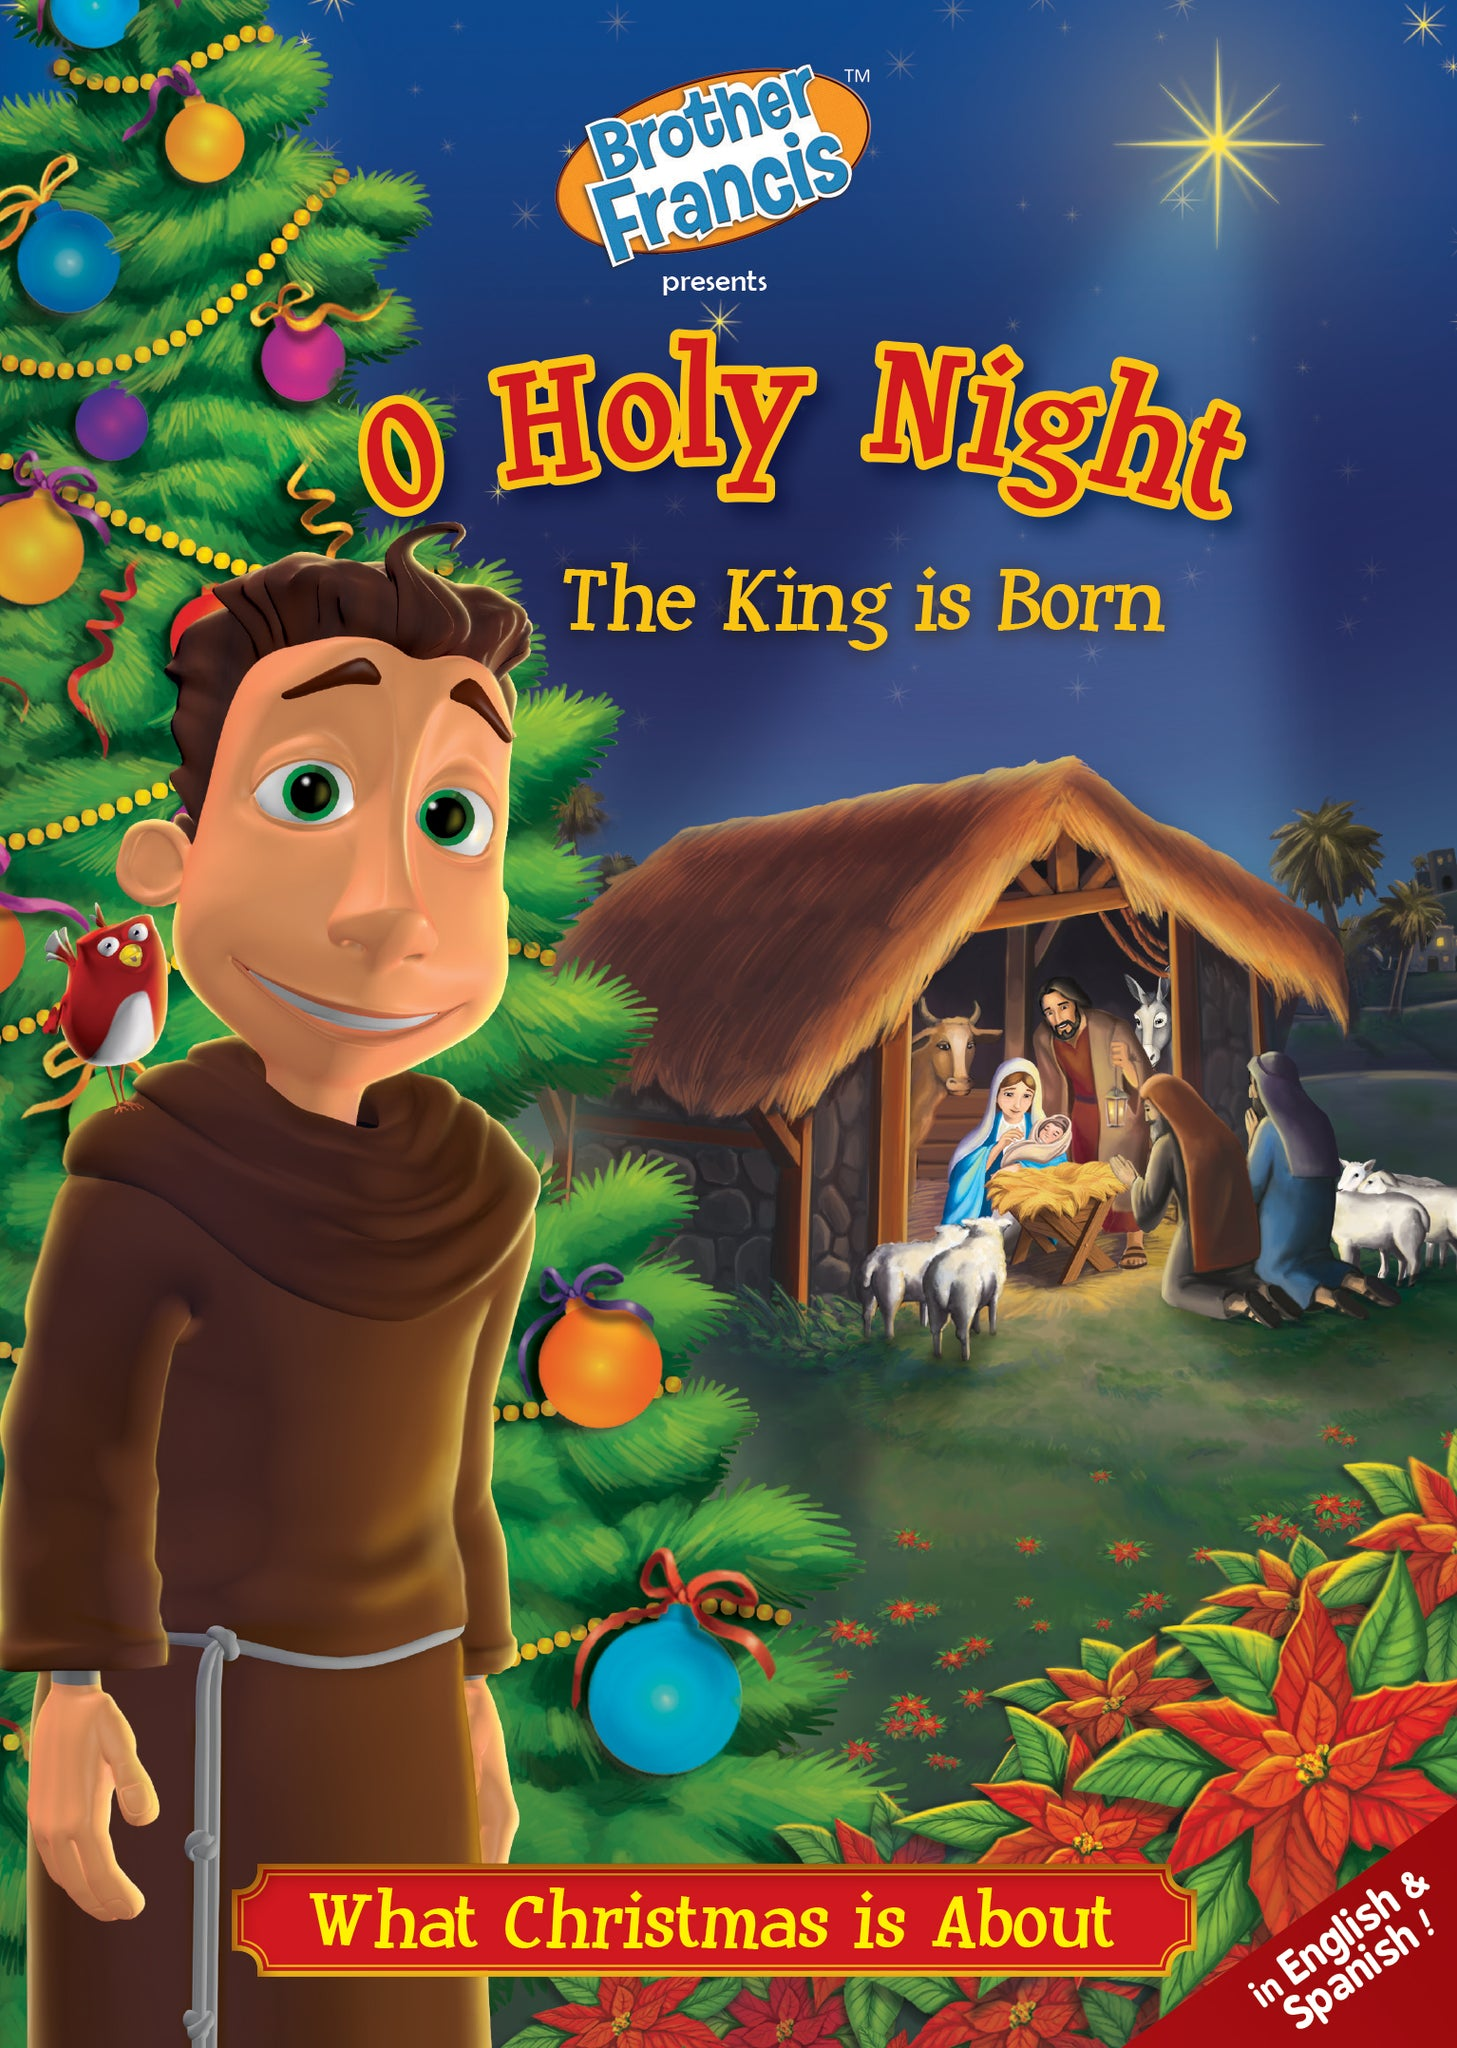 O Holy Night: The King is Born